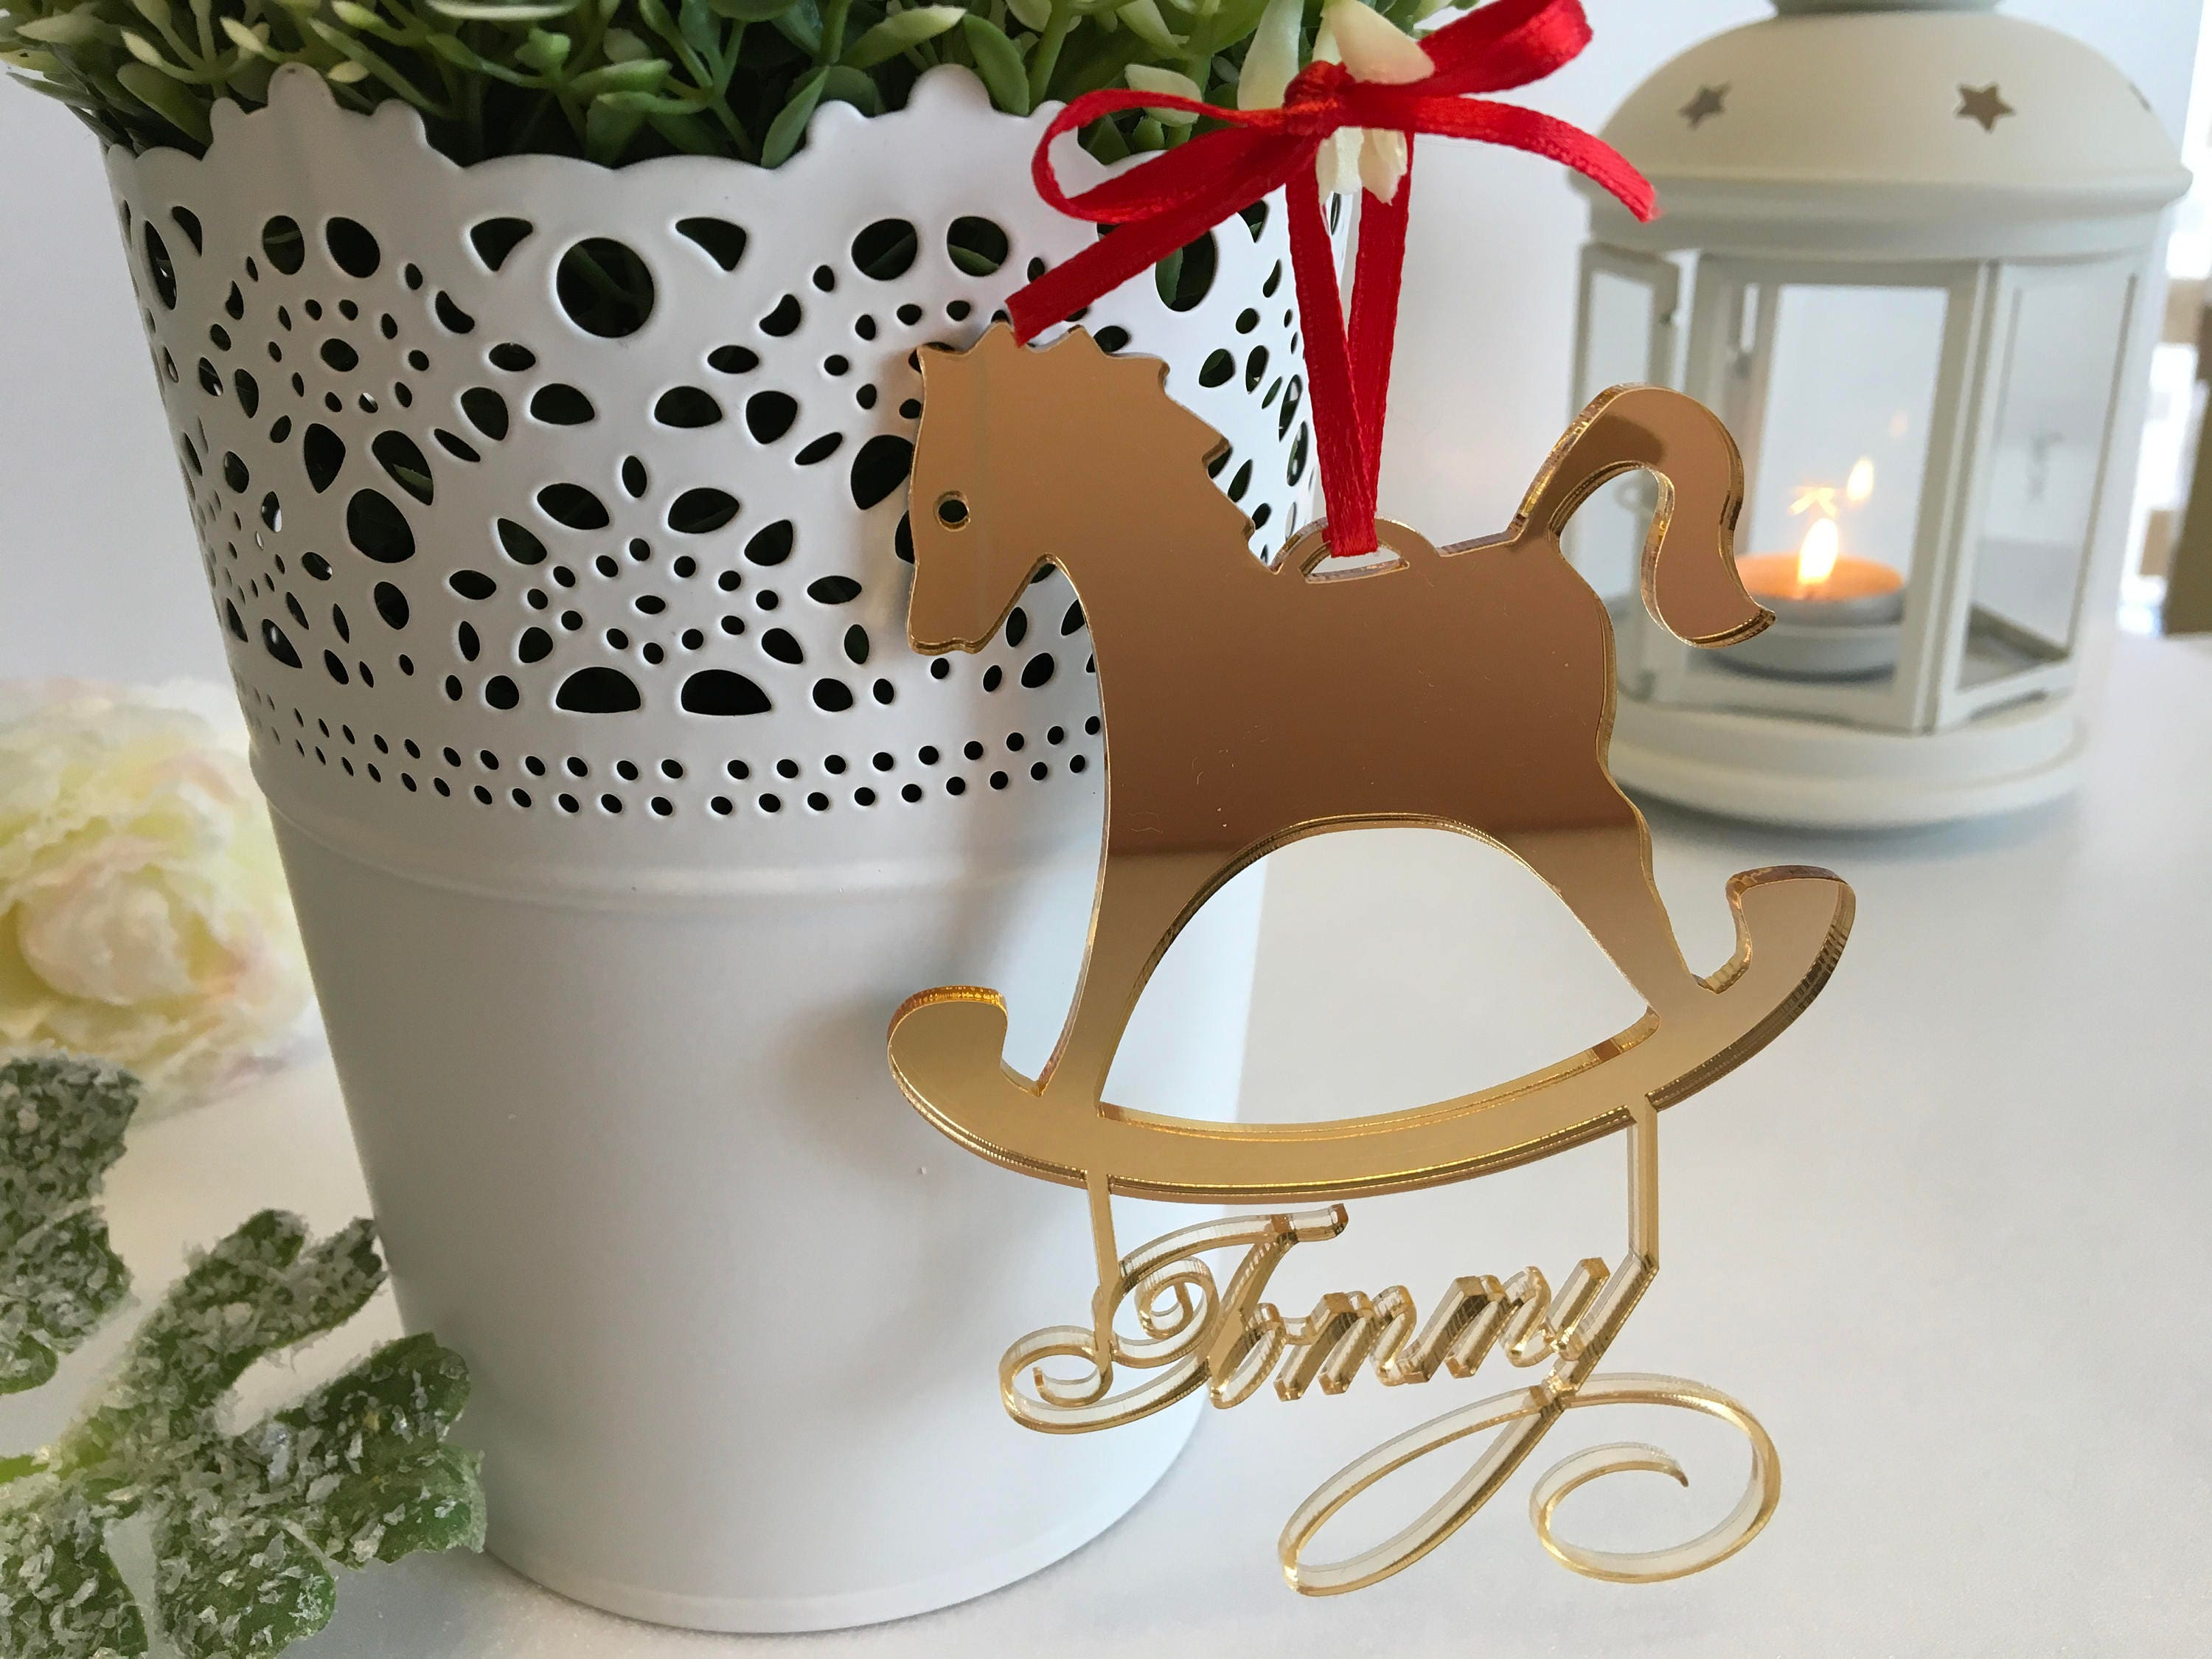 Personalized Gold Mirror Rocking Horse Ornament First Christmas Gift  Christmas Wood Horse Tree Ornament Custom Horse Christmas Gift For Kids